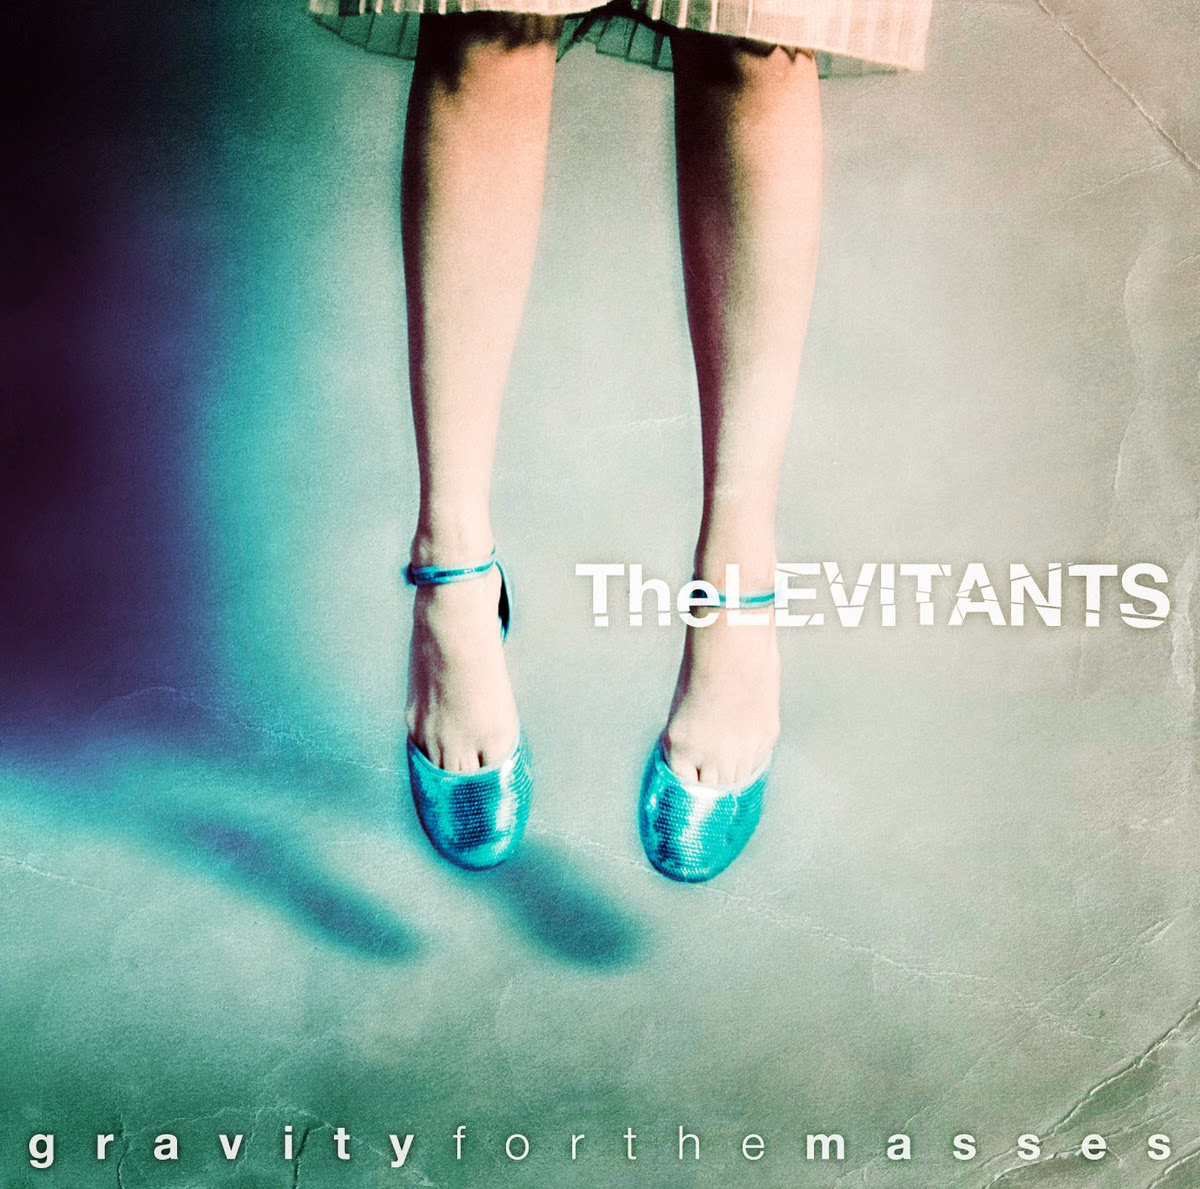 http://thelevitants.bandcamp.com/